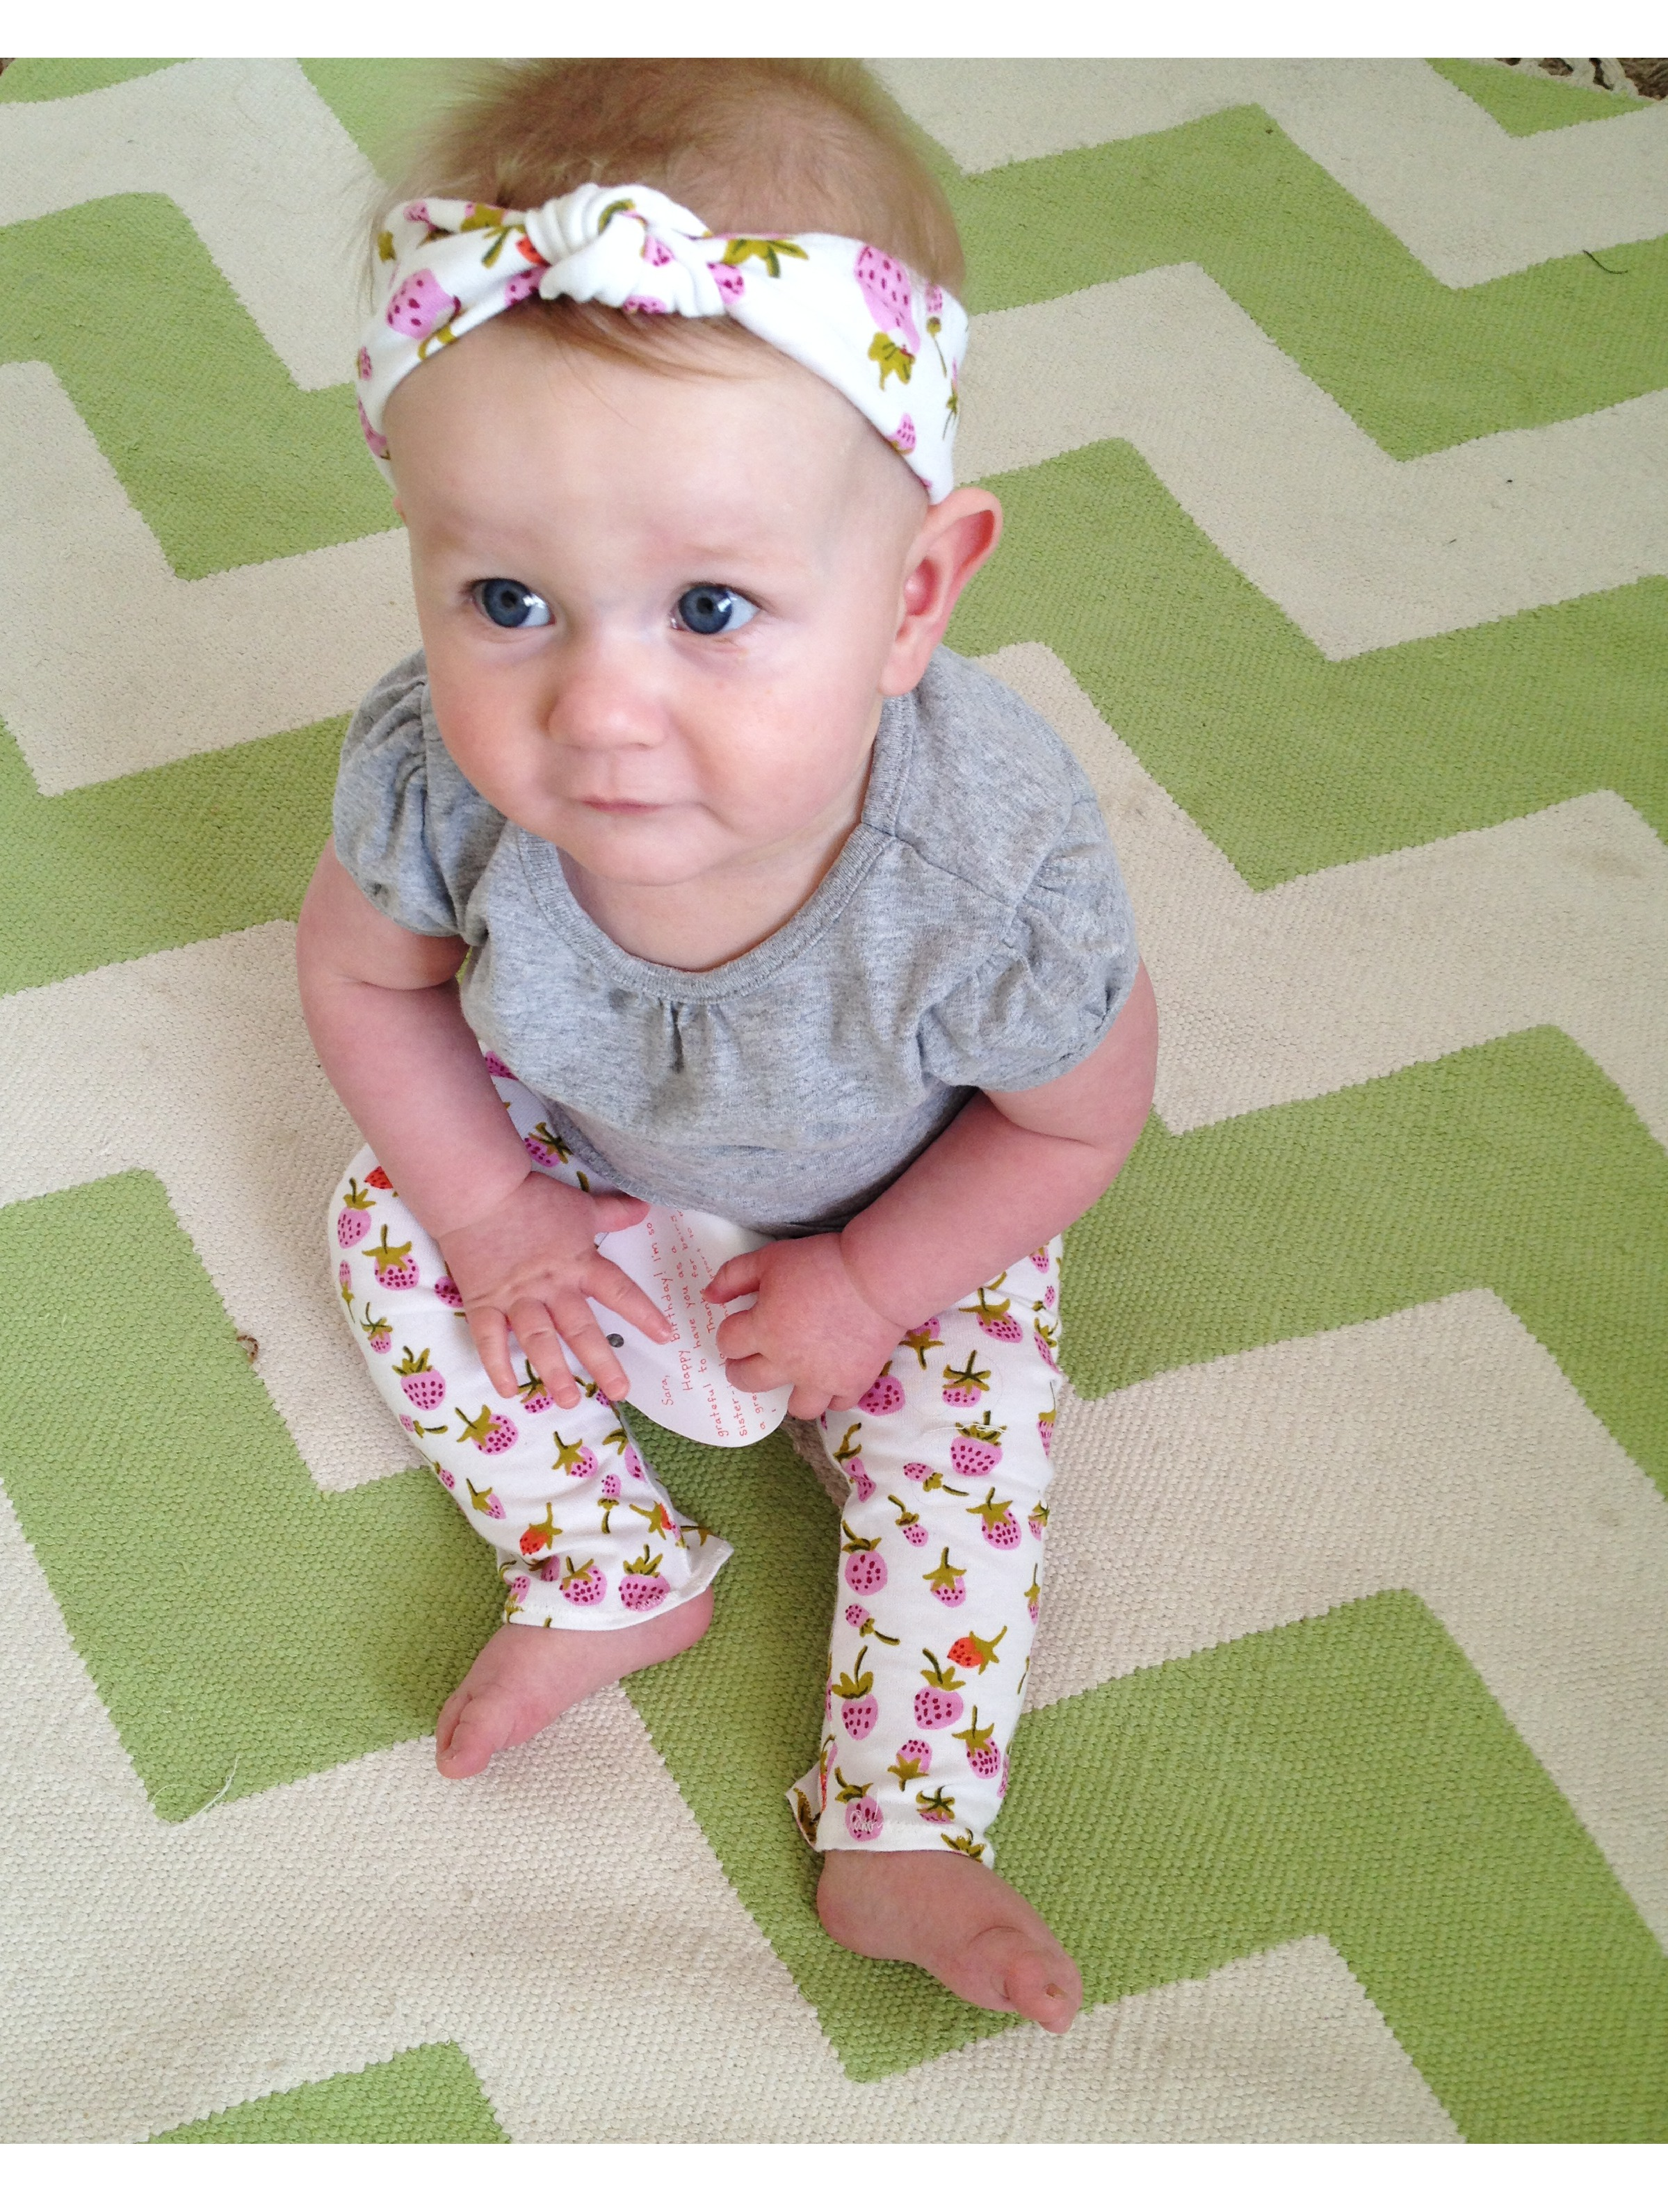 Knotted Baby Turban Tutorial The Sara Project Headband Image